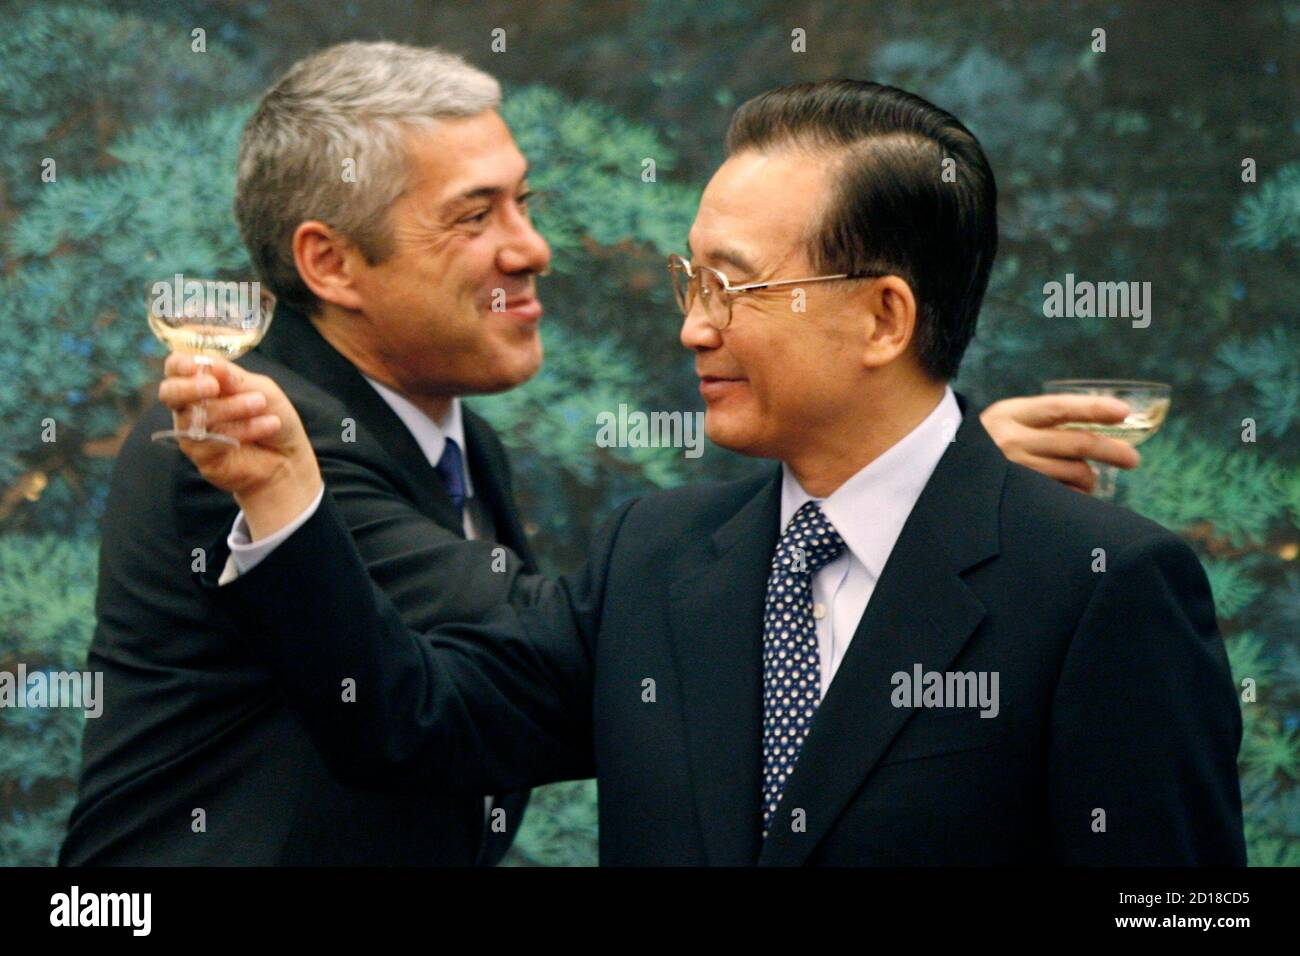 China's Prime Minister Wen Jiabao (R) and his visiting Portuguese counterpart Jose Socrates toast after witnessing a bilateral agreements signing ceremony at the Great Hall of the People in Beijing January 31, 2007.  REUTERS/Claro Cortes IV   (CHINA) Banque D'Images